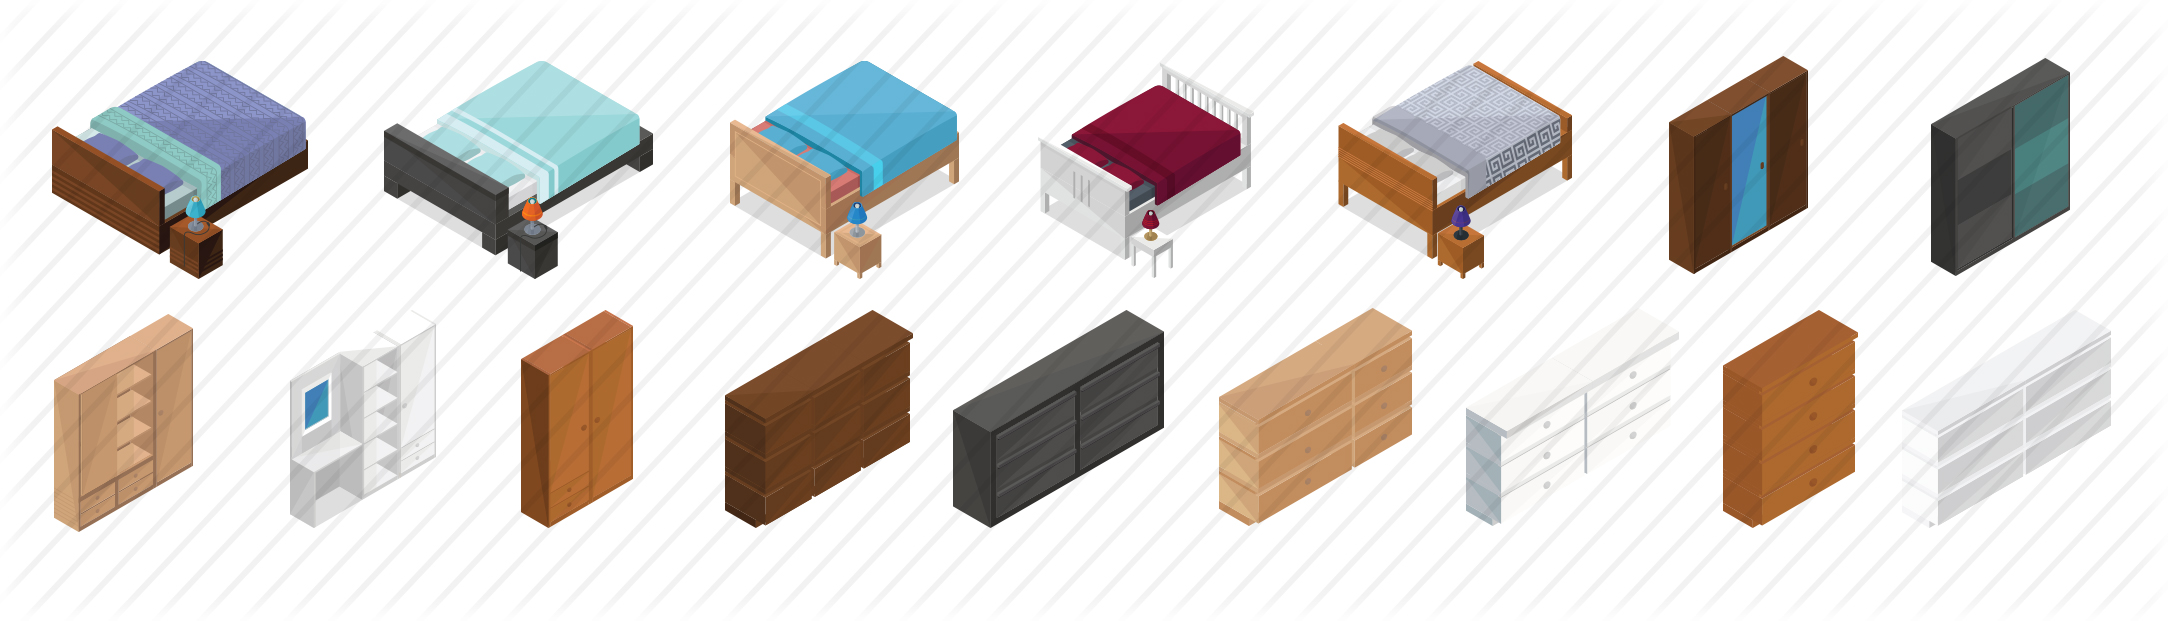 Bedroom-Isometric-Home-preview